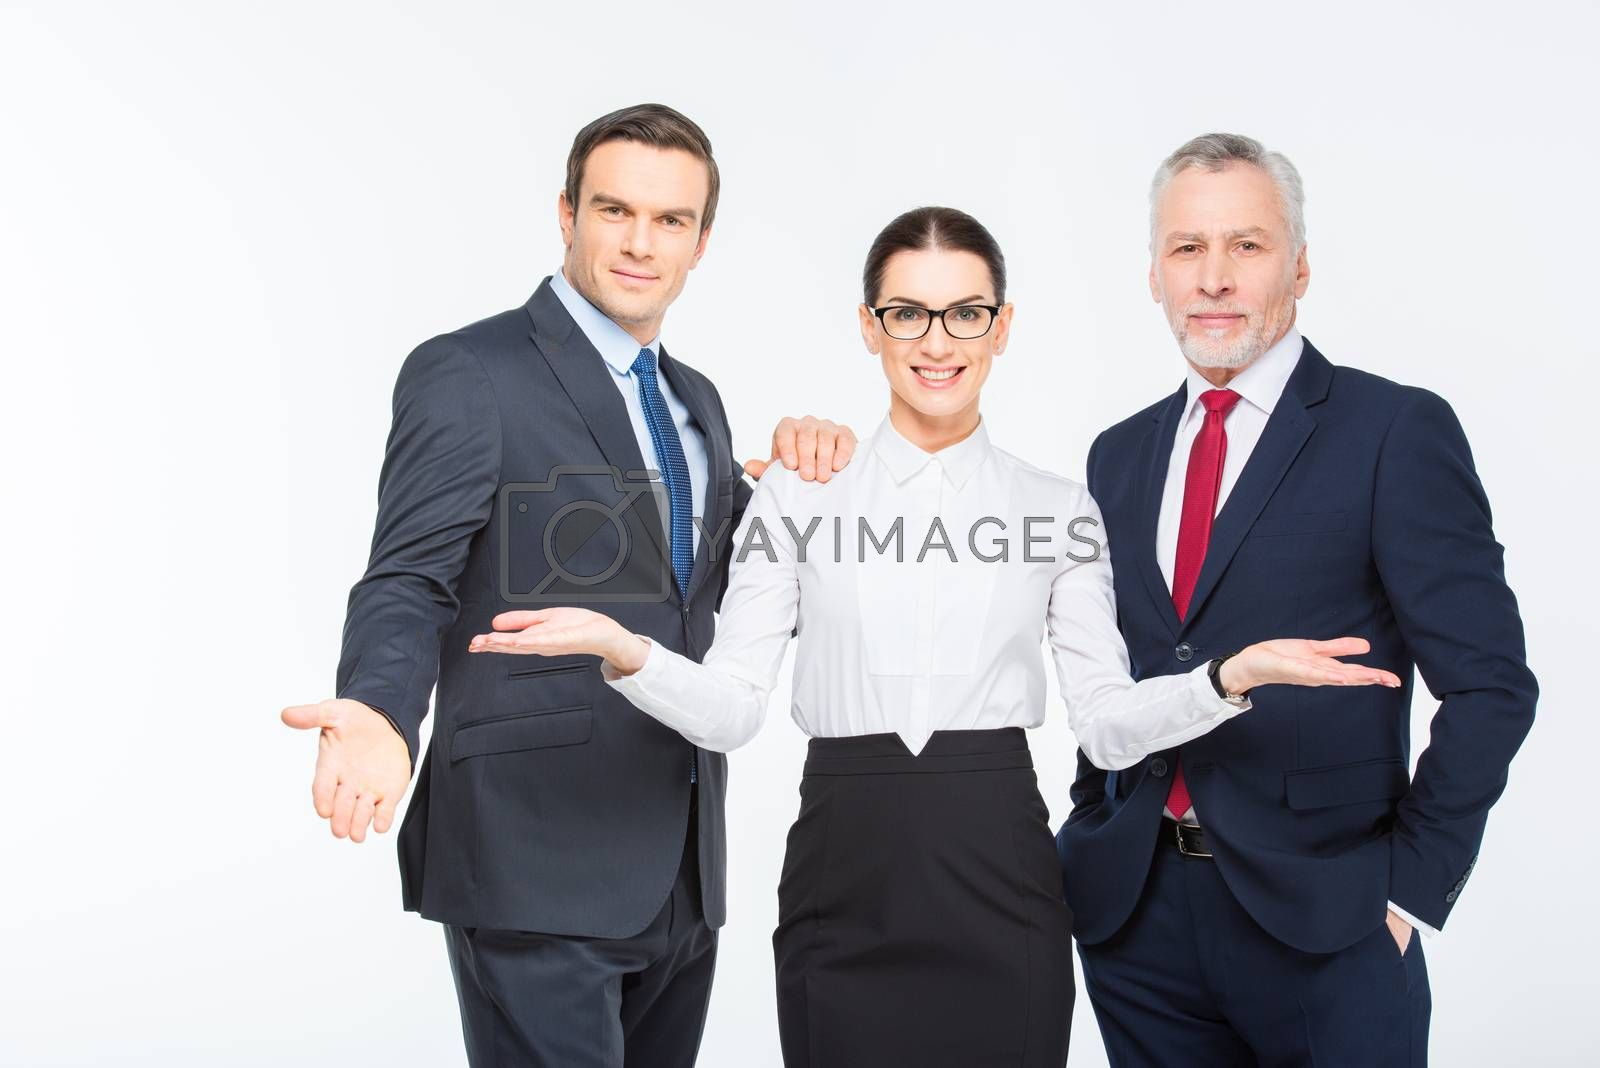 Three happy business people  by LightFieldStudios